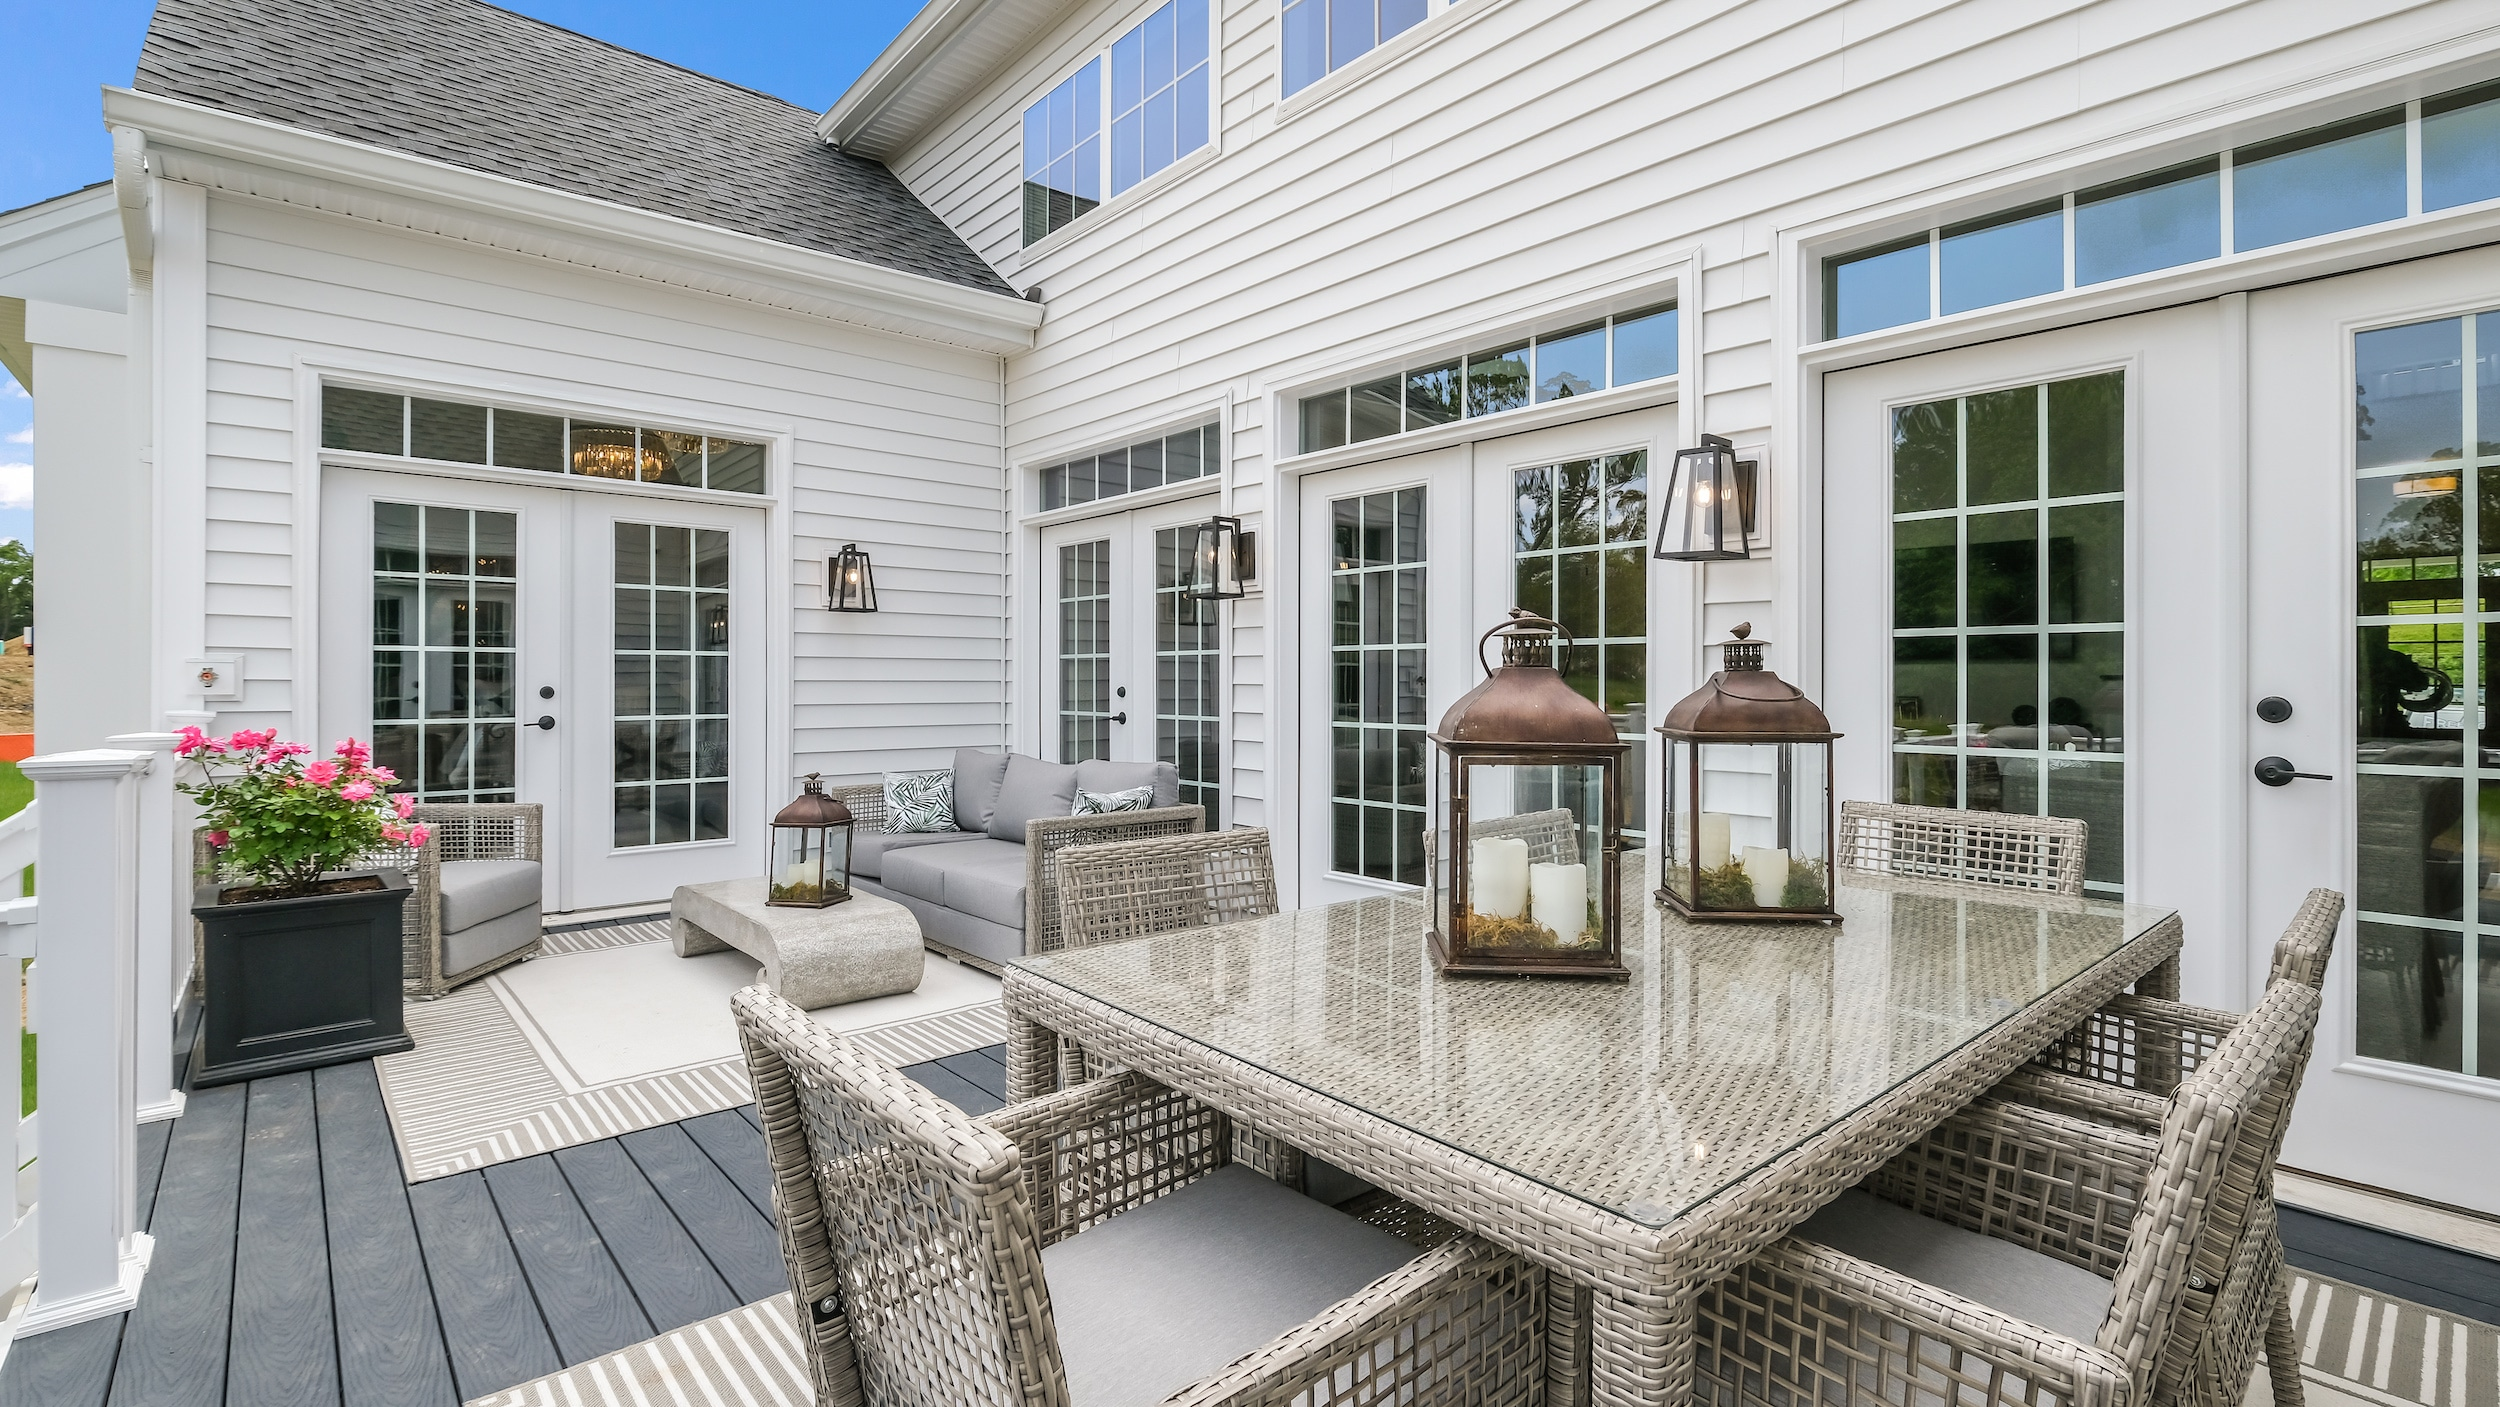 Outdoor Entertainment Spaces for Every Lifestyle